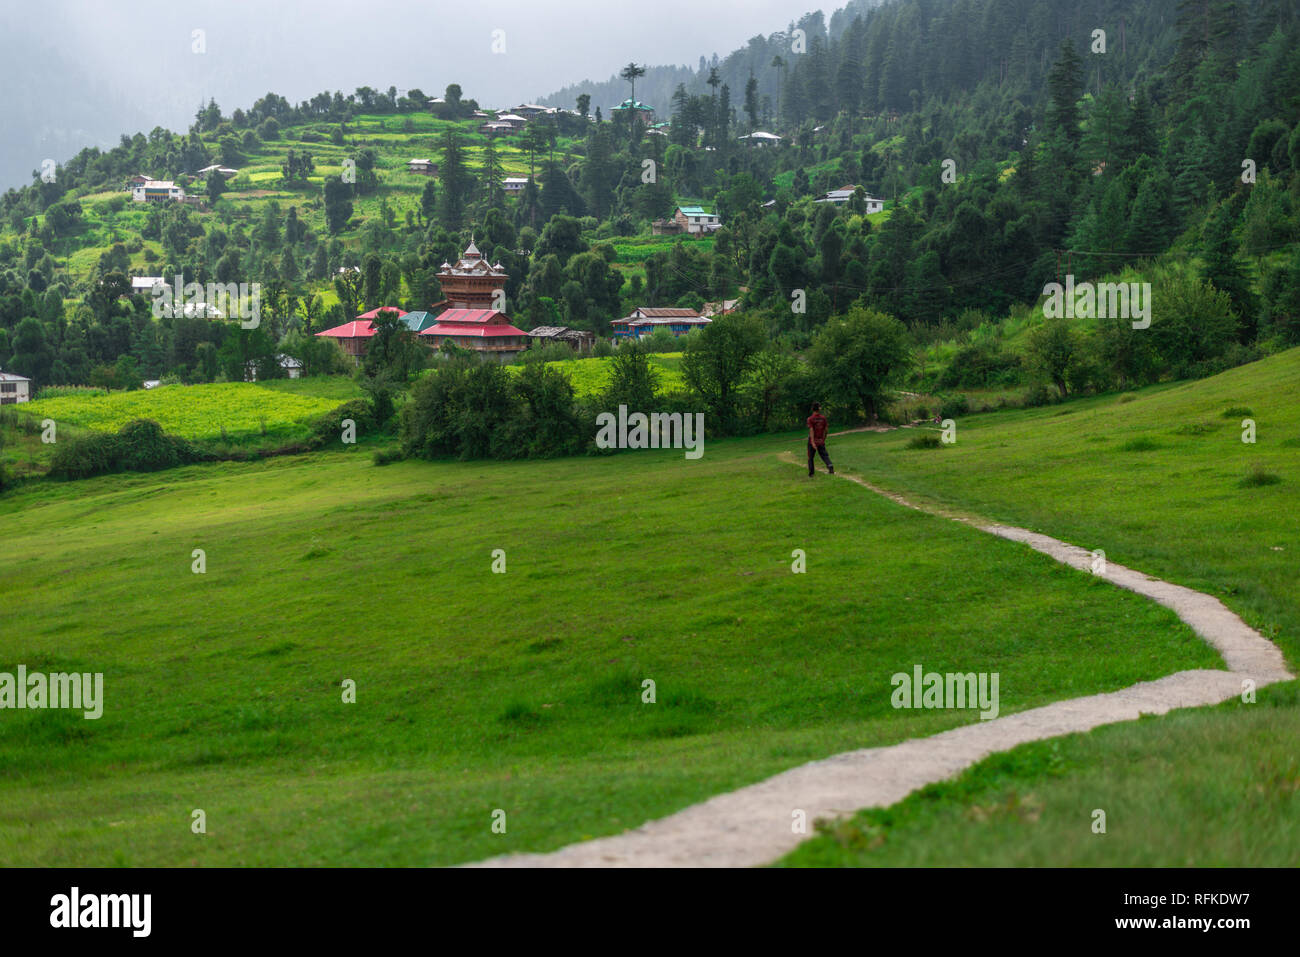 Photo of Temple in Green meadows in himalayas, Great Himalayan National Park, Sainj Valley, Himachal Pradesh, India - Stock Image